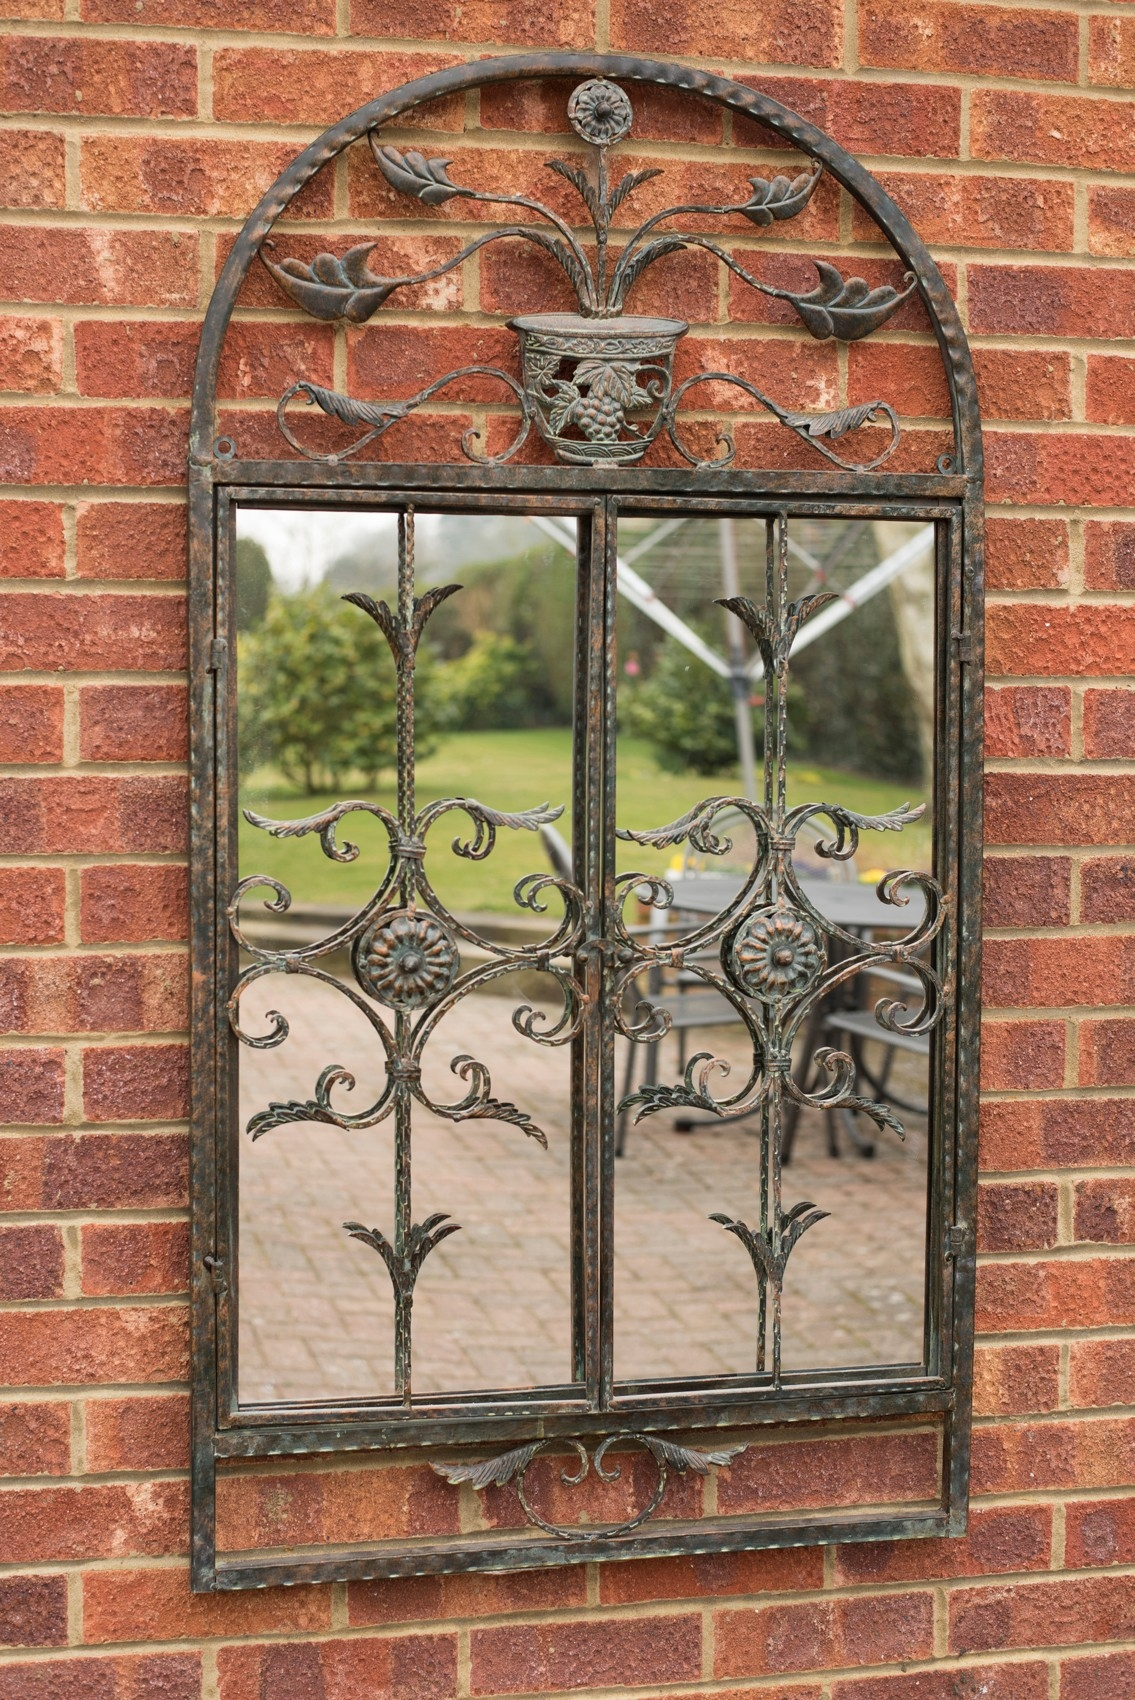 Large Outdoor Garden Mirrors Throughout Garden Wall Mirrors (Image 11 of 15)